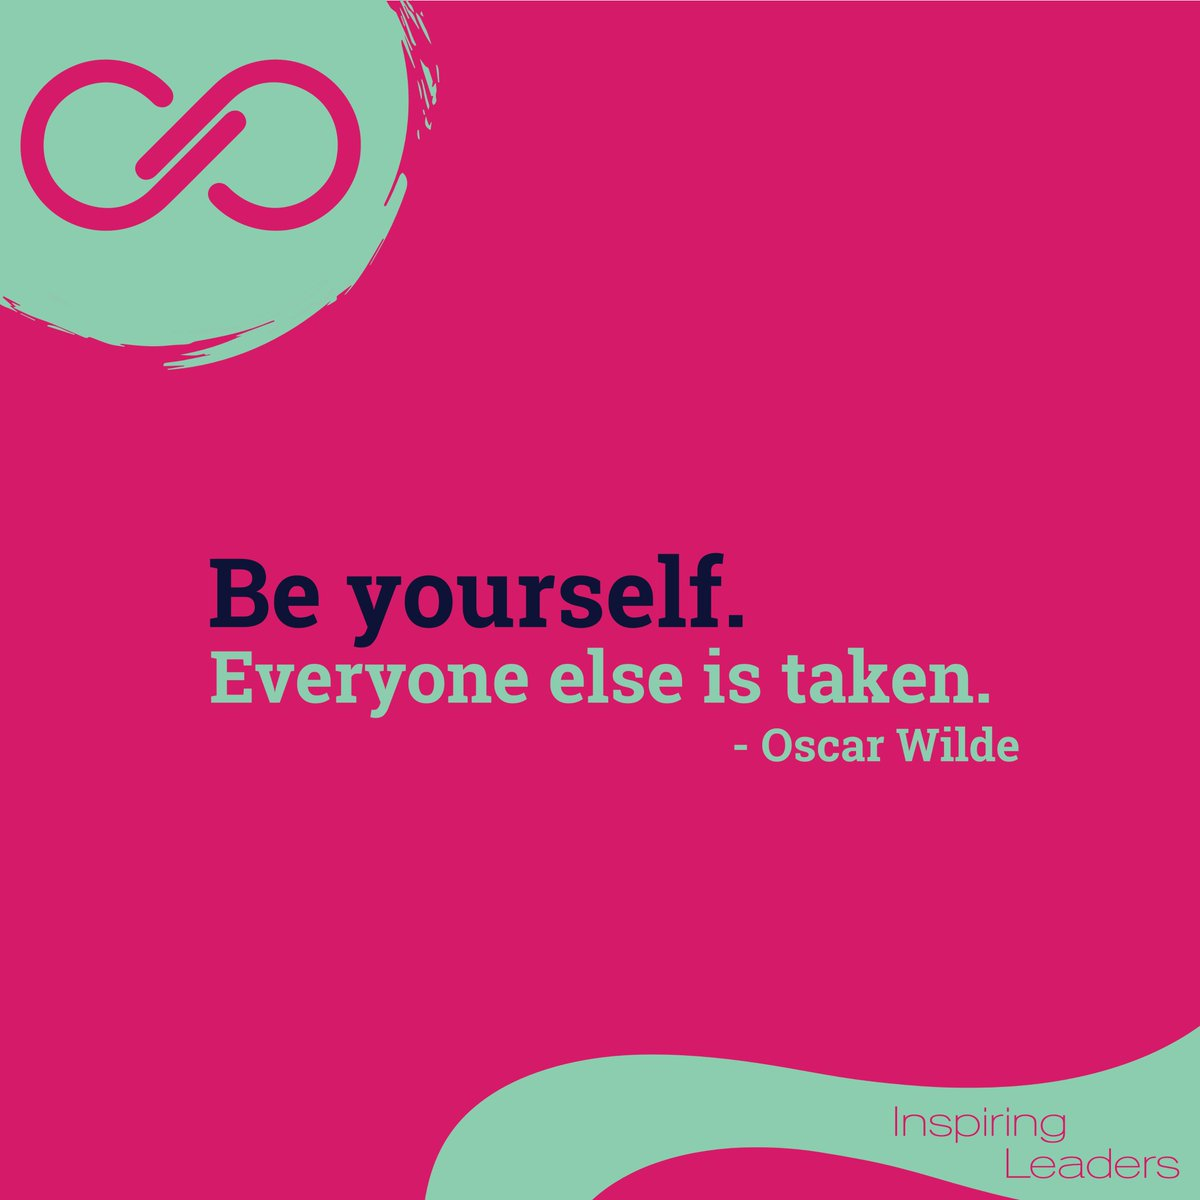 Be yourself. Everyone else is taken.  - Oscar Wilde  #makeadifference #inspiration #positiveimpact #inspiringleaderspic.twitter.com/5X9hJAiuZA